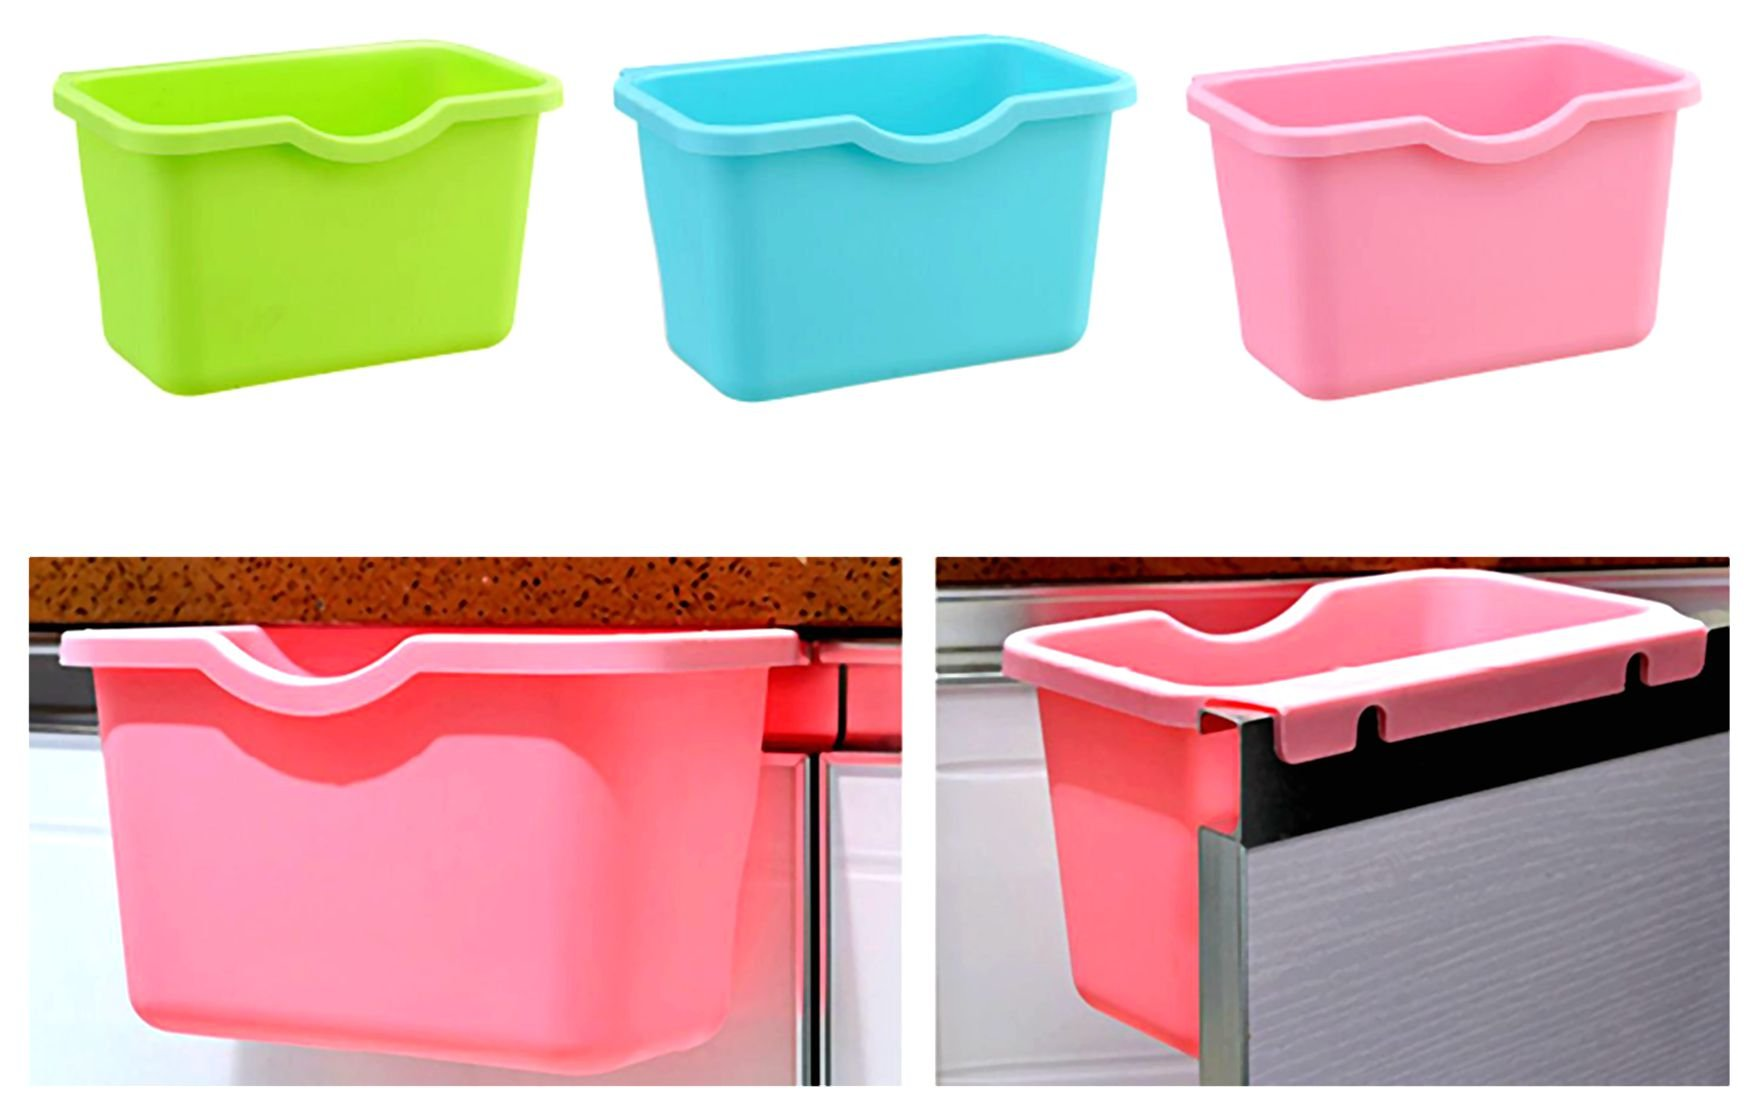 Creative Plastic Basket Wastebaskets VANORIG Multifuctional Hanging Trash Can Waste Bins Deskside Recycling Garbage Bowls Can Containers ,Pack of 3 (Assorted Colors)